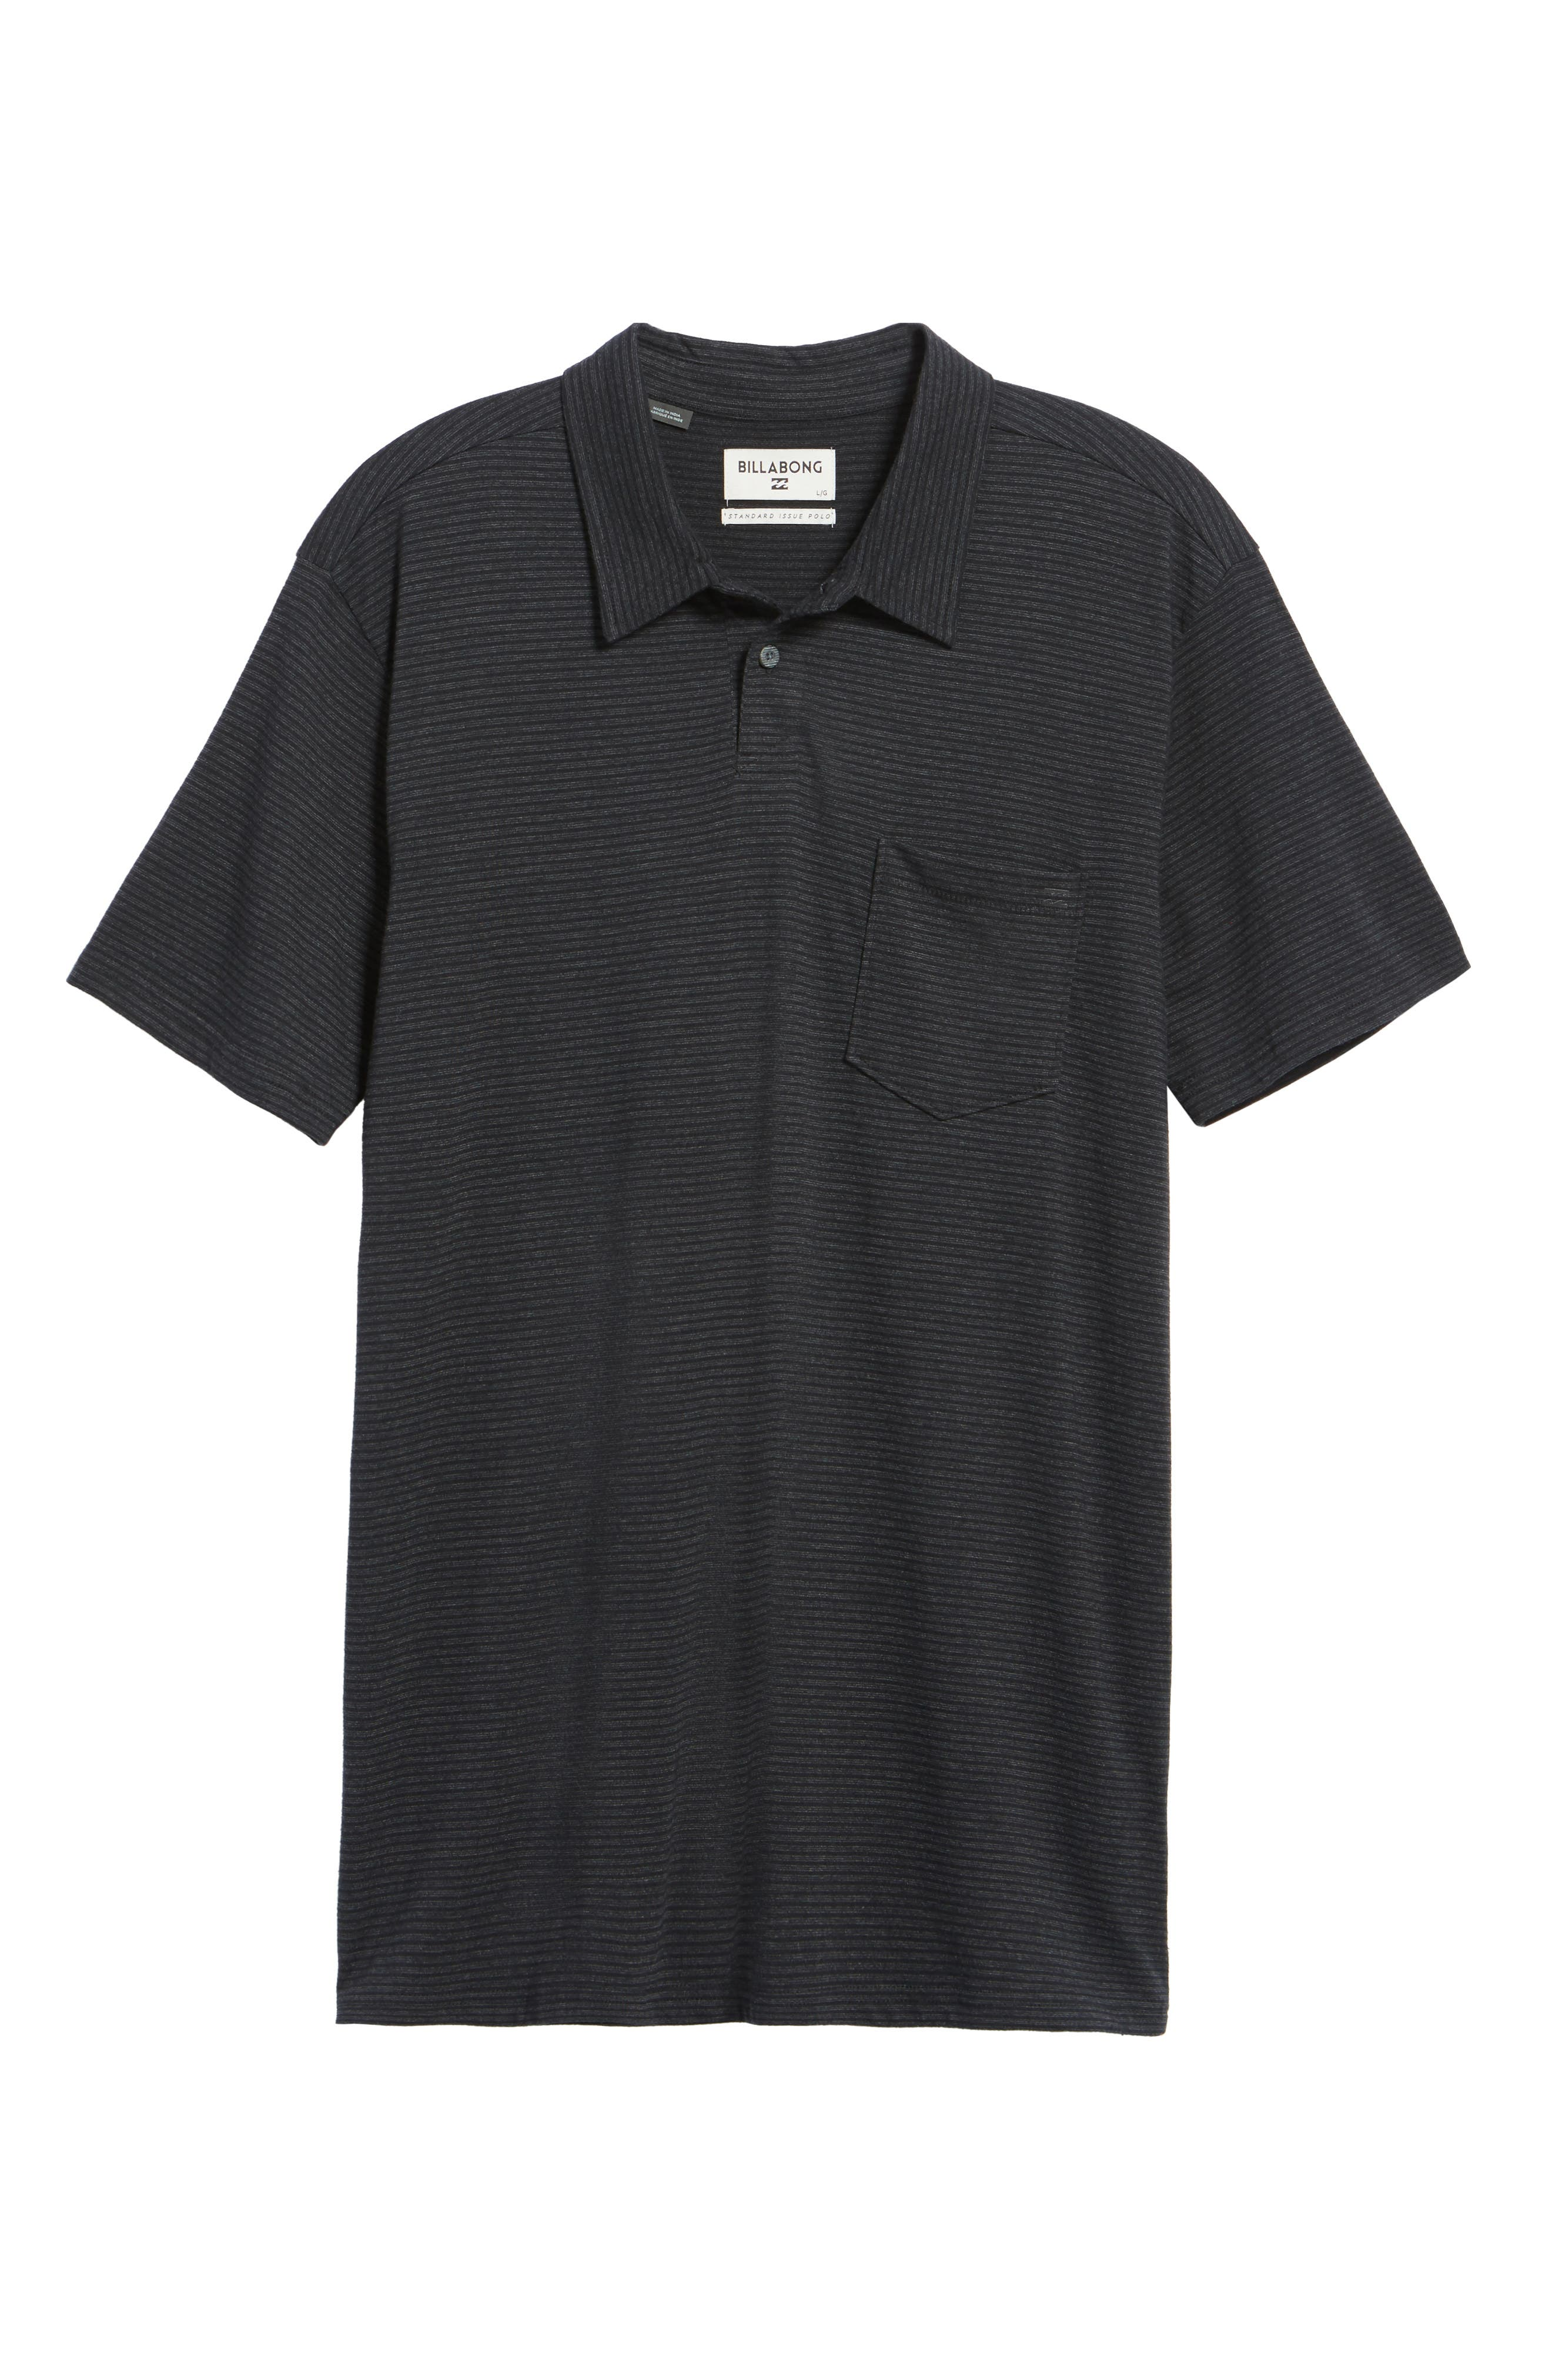 Standard Issue Polo,                             Alternate thumbnail 6, color,                             002